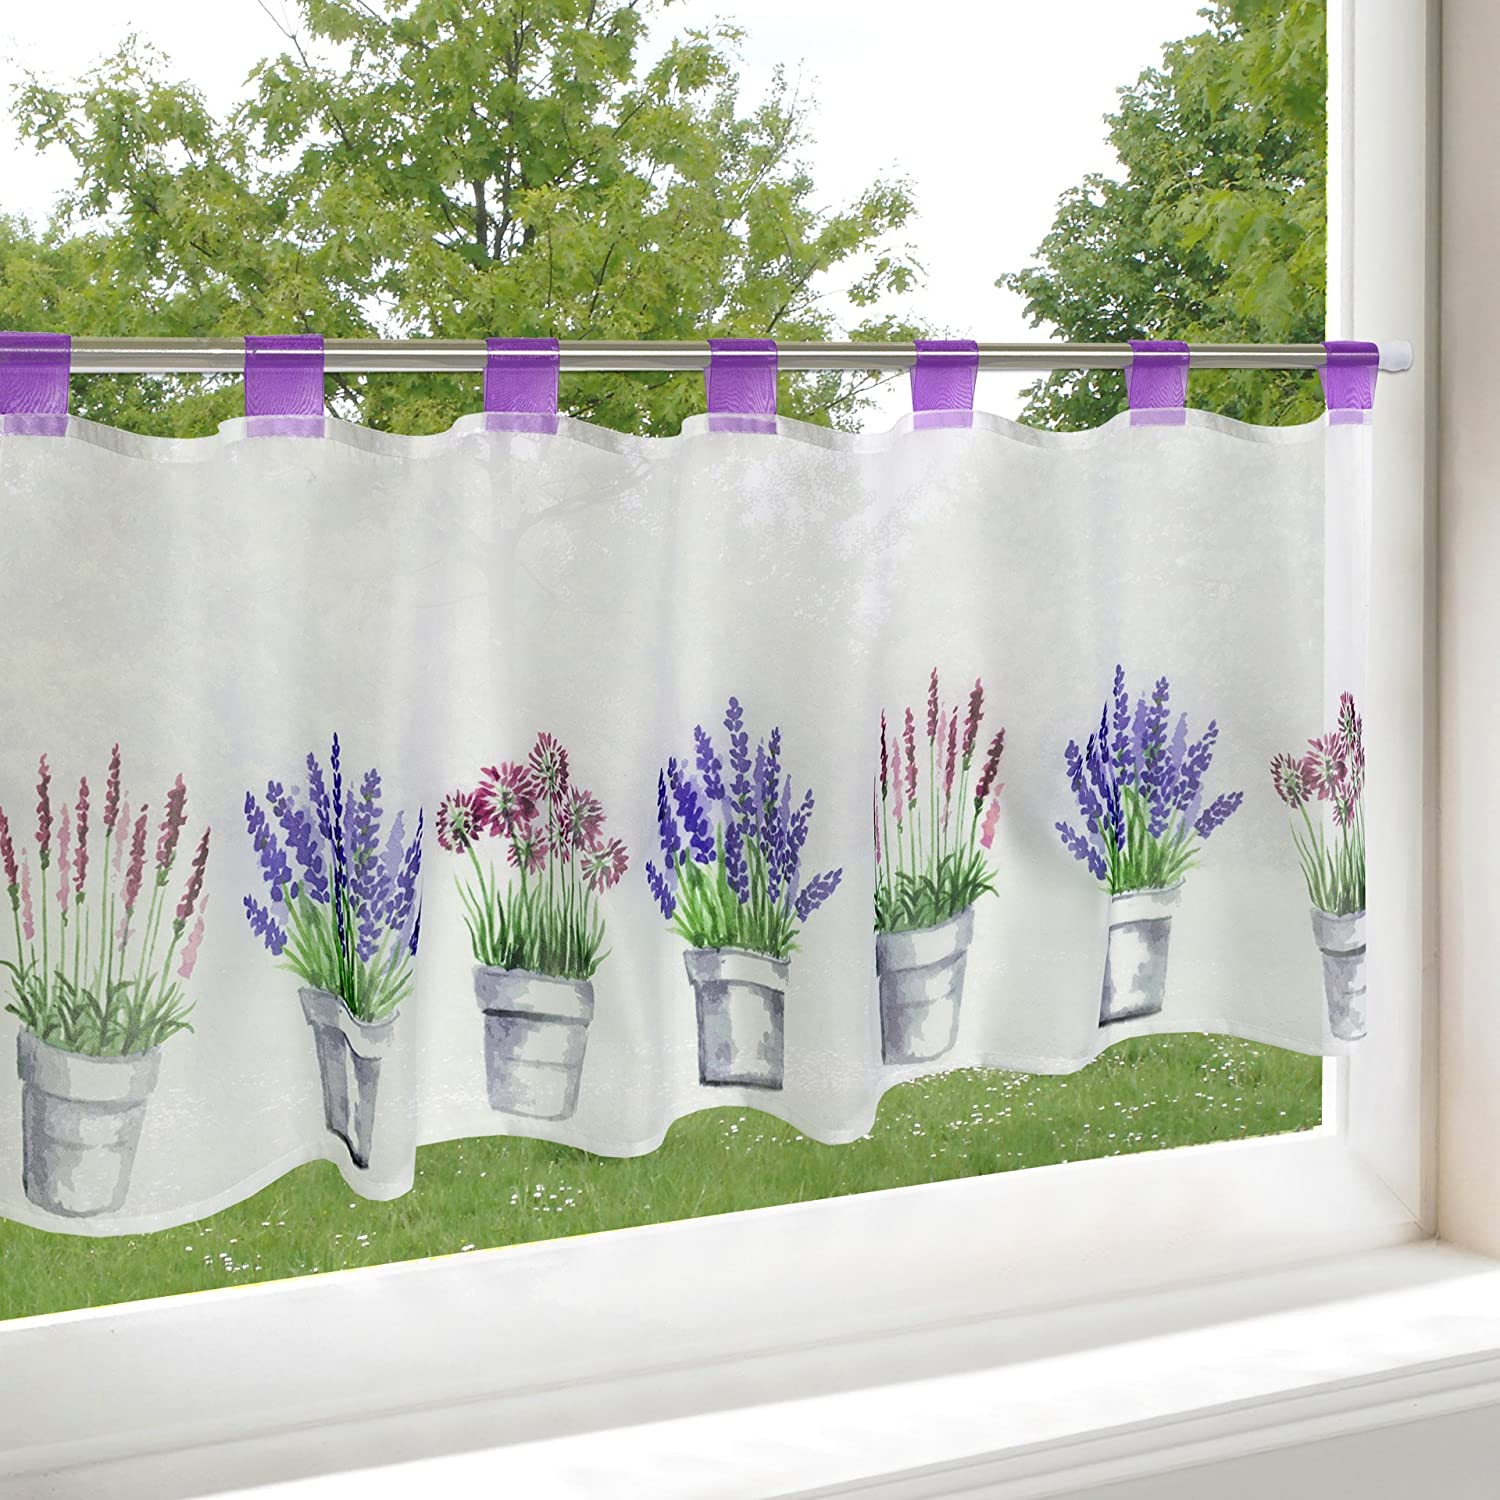 'Modern and Decorative Net Curtain Cafe net curtain with loops Lavender Delicate Digital Print Voile with Trendy Photo Print With Translucent and Opaque (H x B 45 x 120, Restaurant Kitchen Cafe Curtain Panel – Panne Aux – A Gem in Every Kitchen – from the